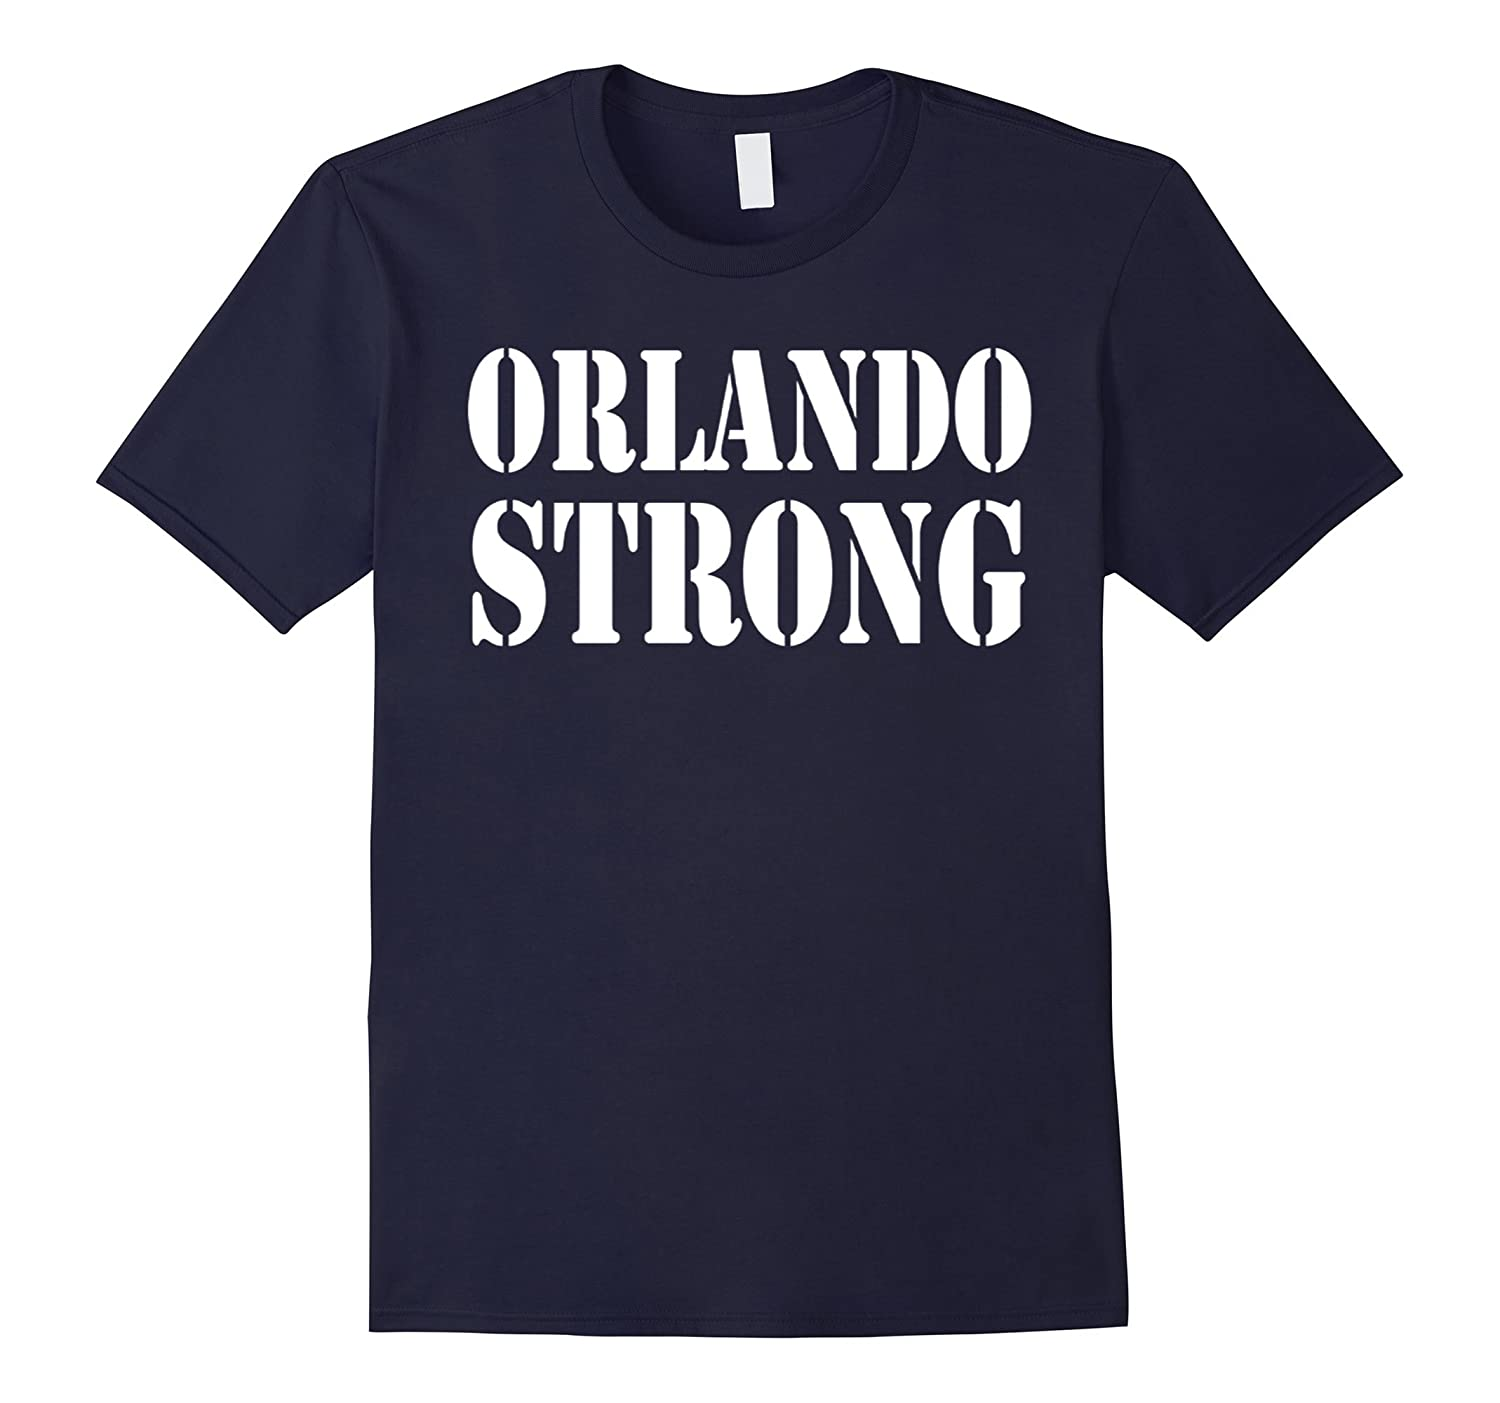 ORLANDO STRONG Come Together as a Community-Art